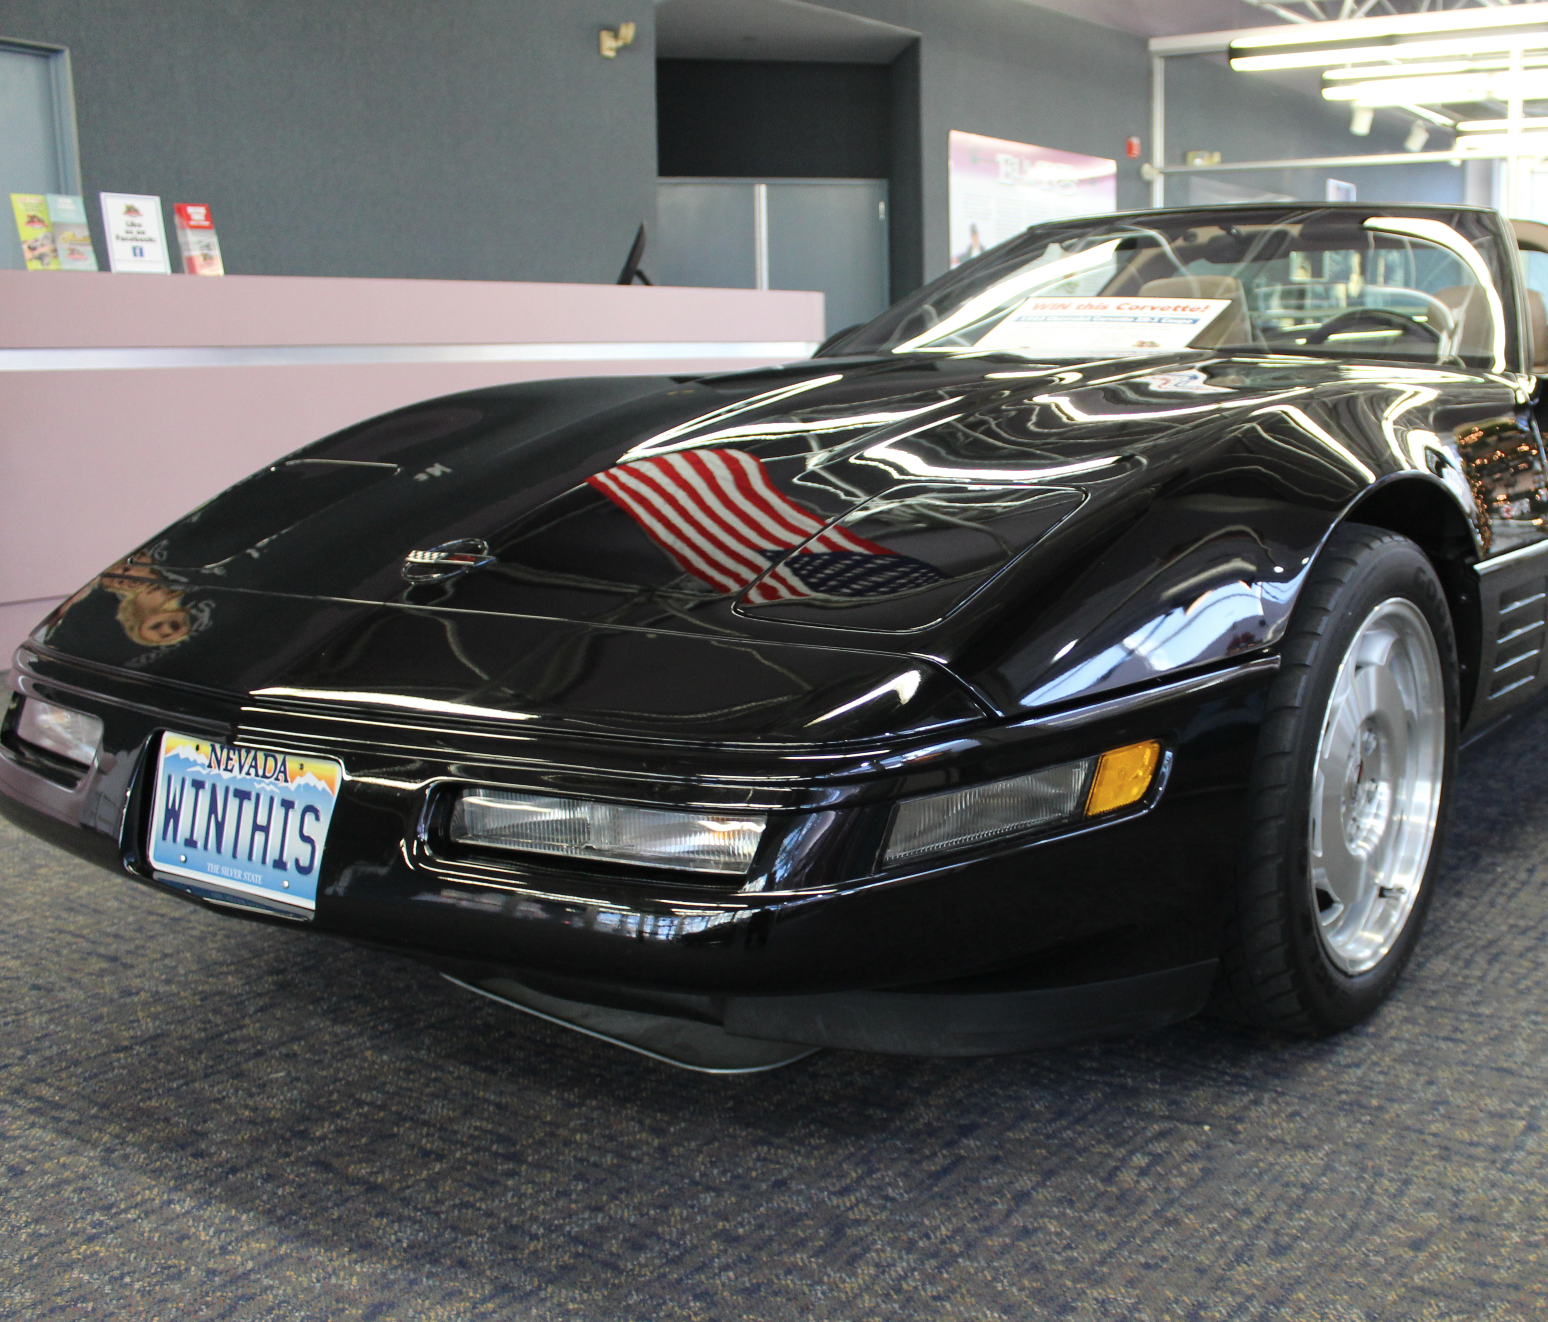 National Automobile Museum Raffles Off Corvette For Fundraiser - Reno nevada car show 2018